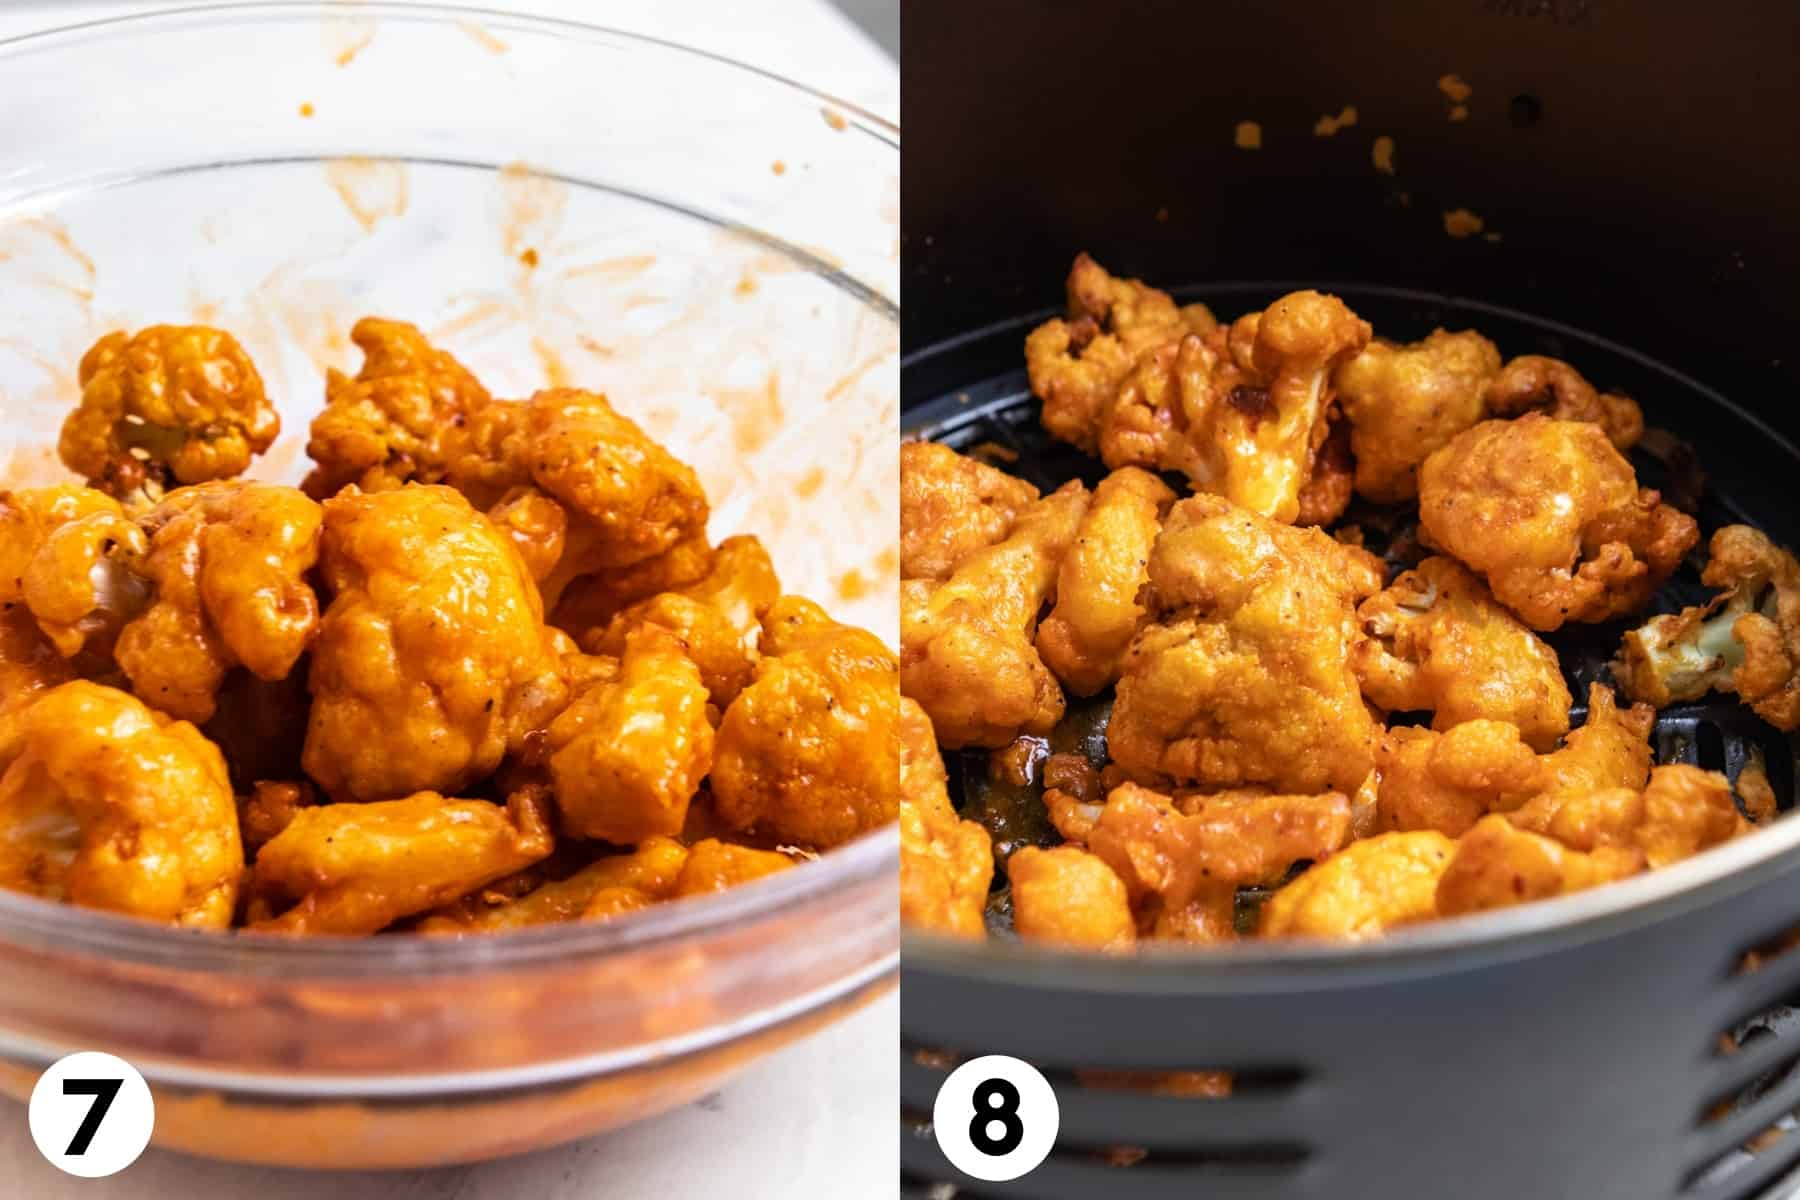 Buffalo sauce tossed with cauliflower and then added to air fryer.